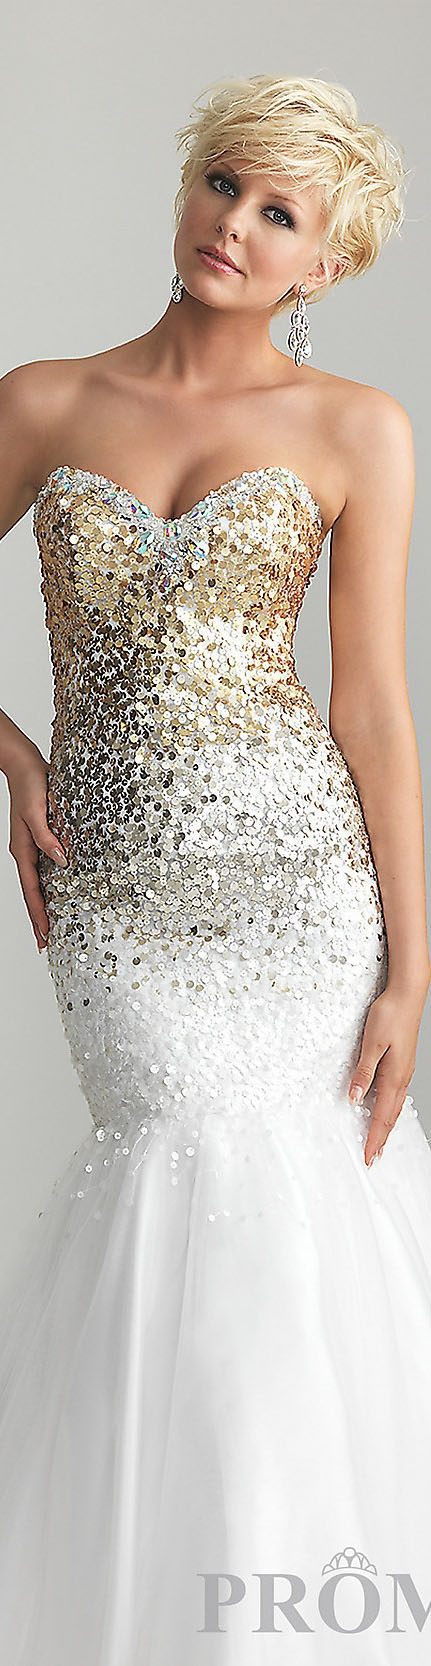 makayla ♡ | formal wear | Pinterest | Formal, Gold glitter and Prom